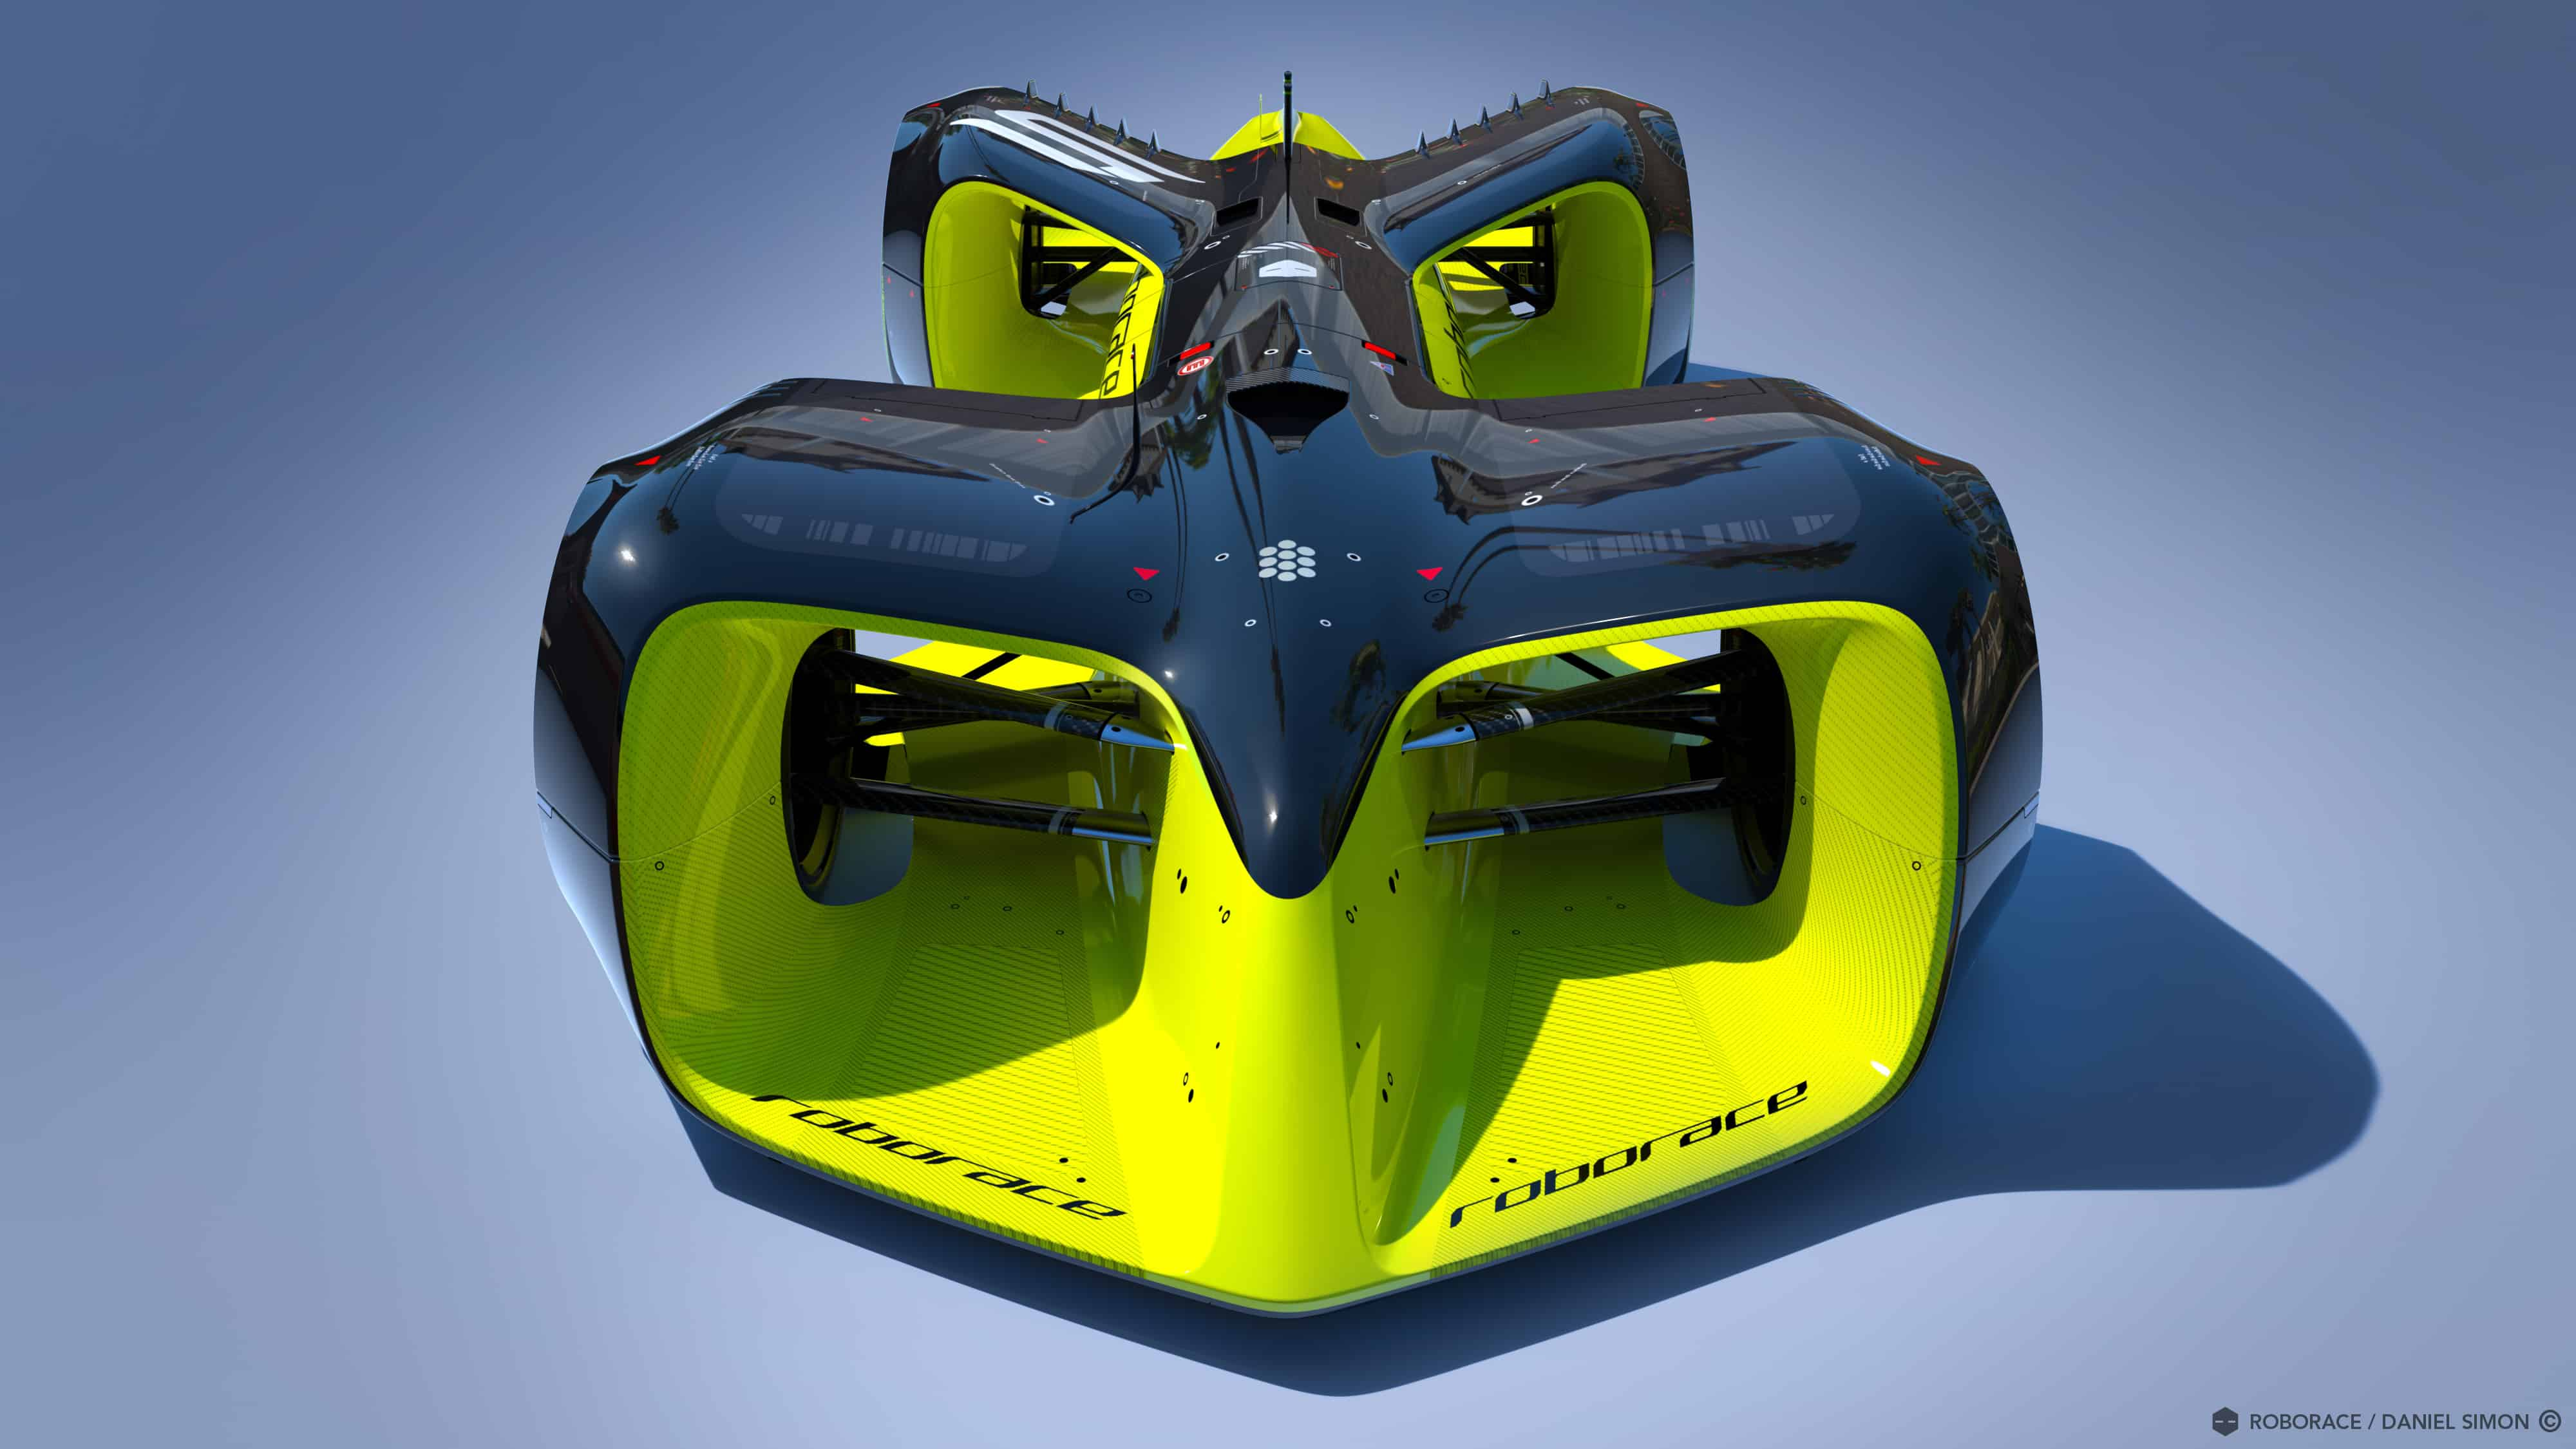 Not a view that any human driver will see in their rear-view mirror. Image by Chief Design Officer Daniel Simon / Roborace Ltd.